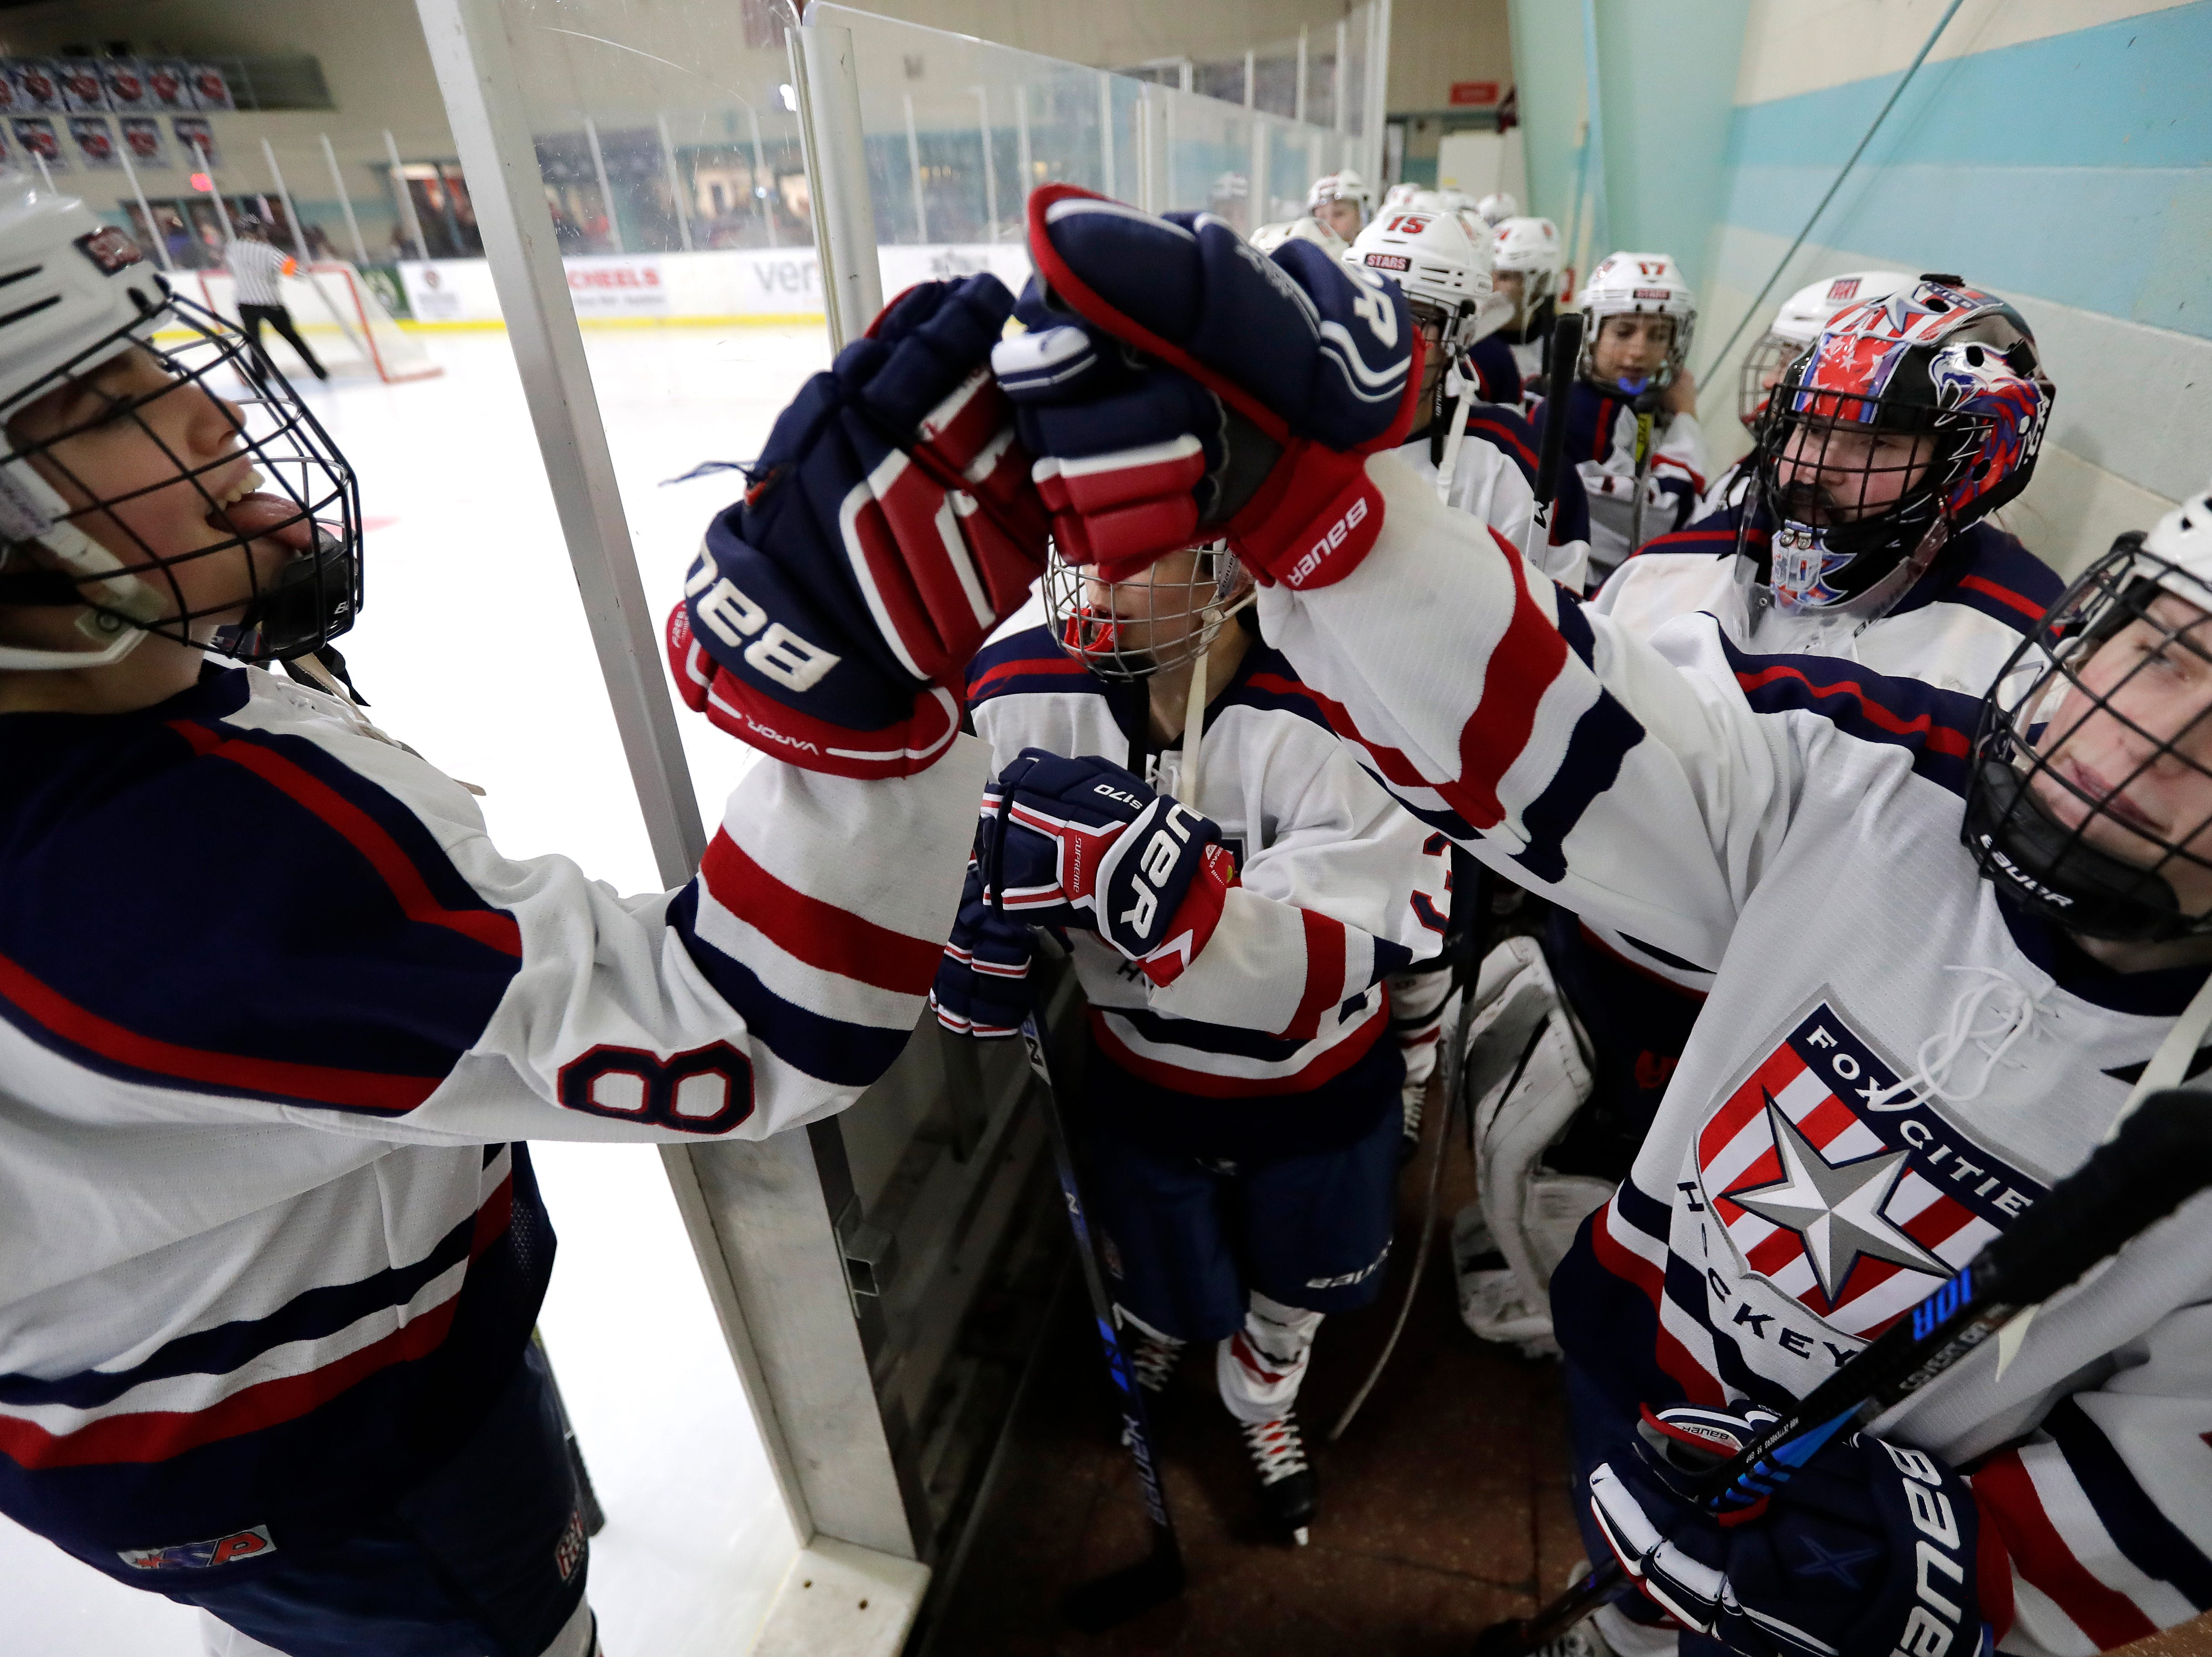 Fox Cities Stars' Victoria Nelson (8) and Annika Horman (12) fist bump as they take to the ice against Wisconsin Valley Union during their girls hockey game Tuesday, December 18, 2018, at Tri-County Ice Arena in Fox Crossing, Wis. Dan Powers/USA TODAY NETWORK-Wisconsin